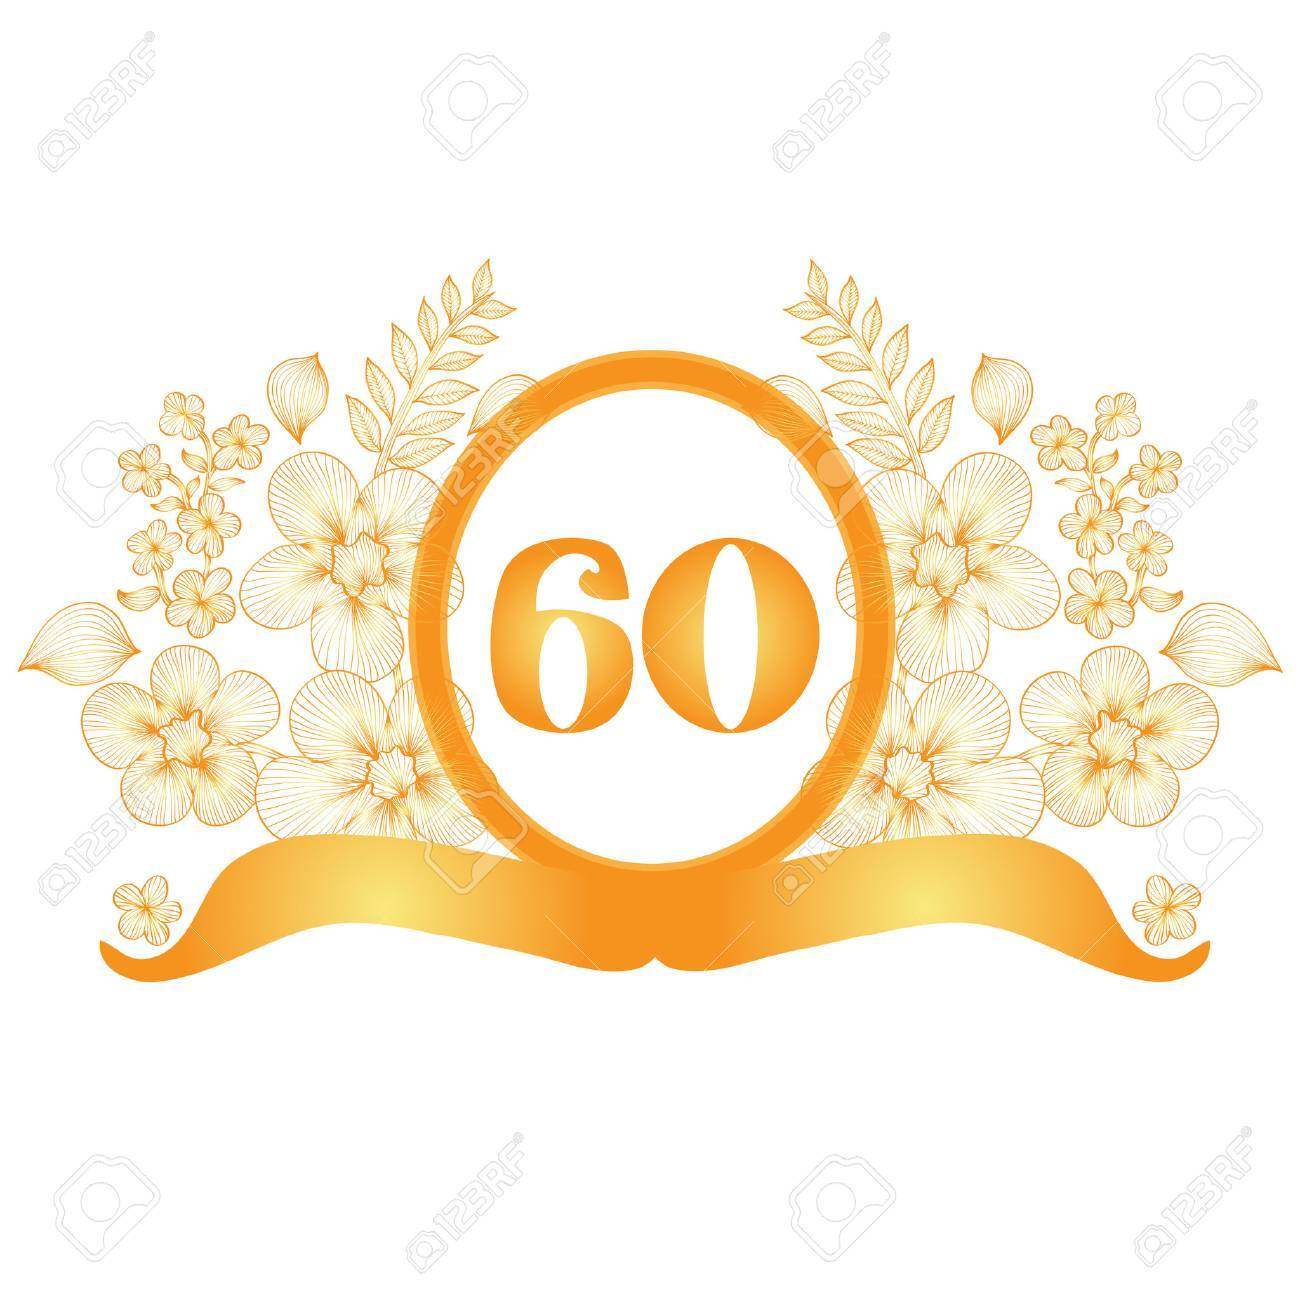 60th anniversary golden floral banner, design element.